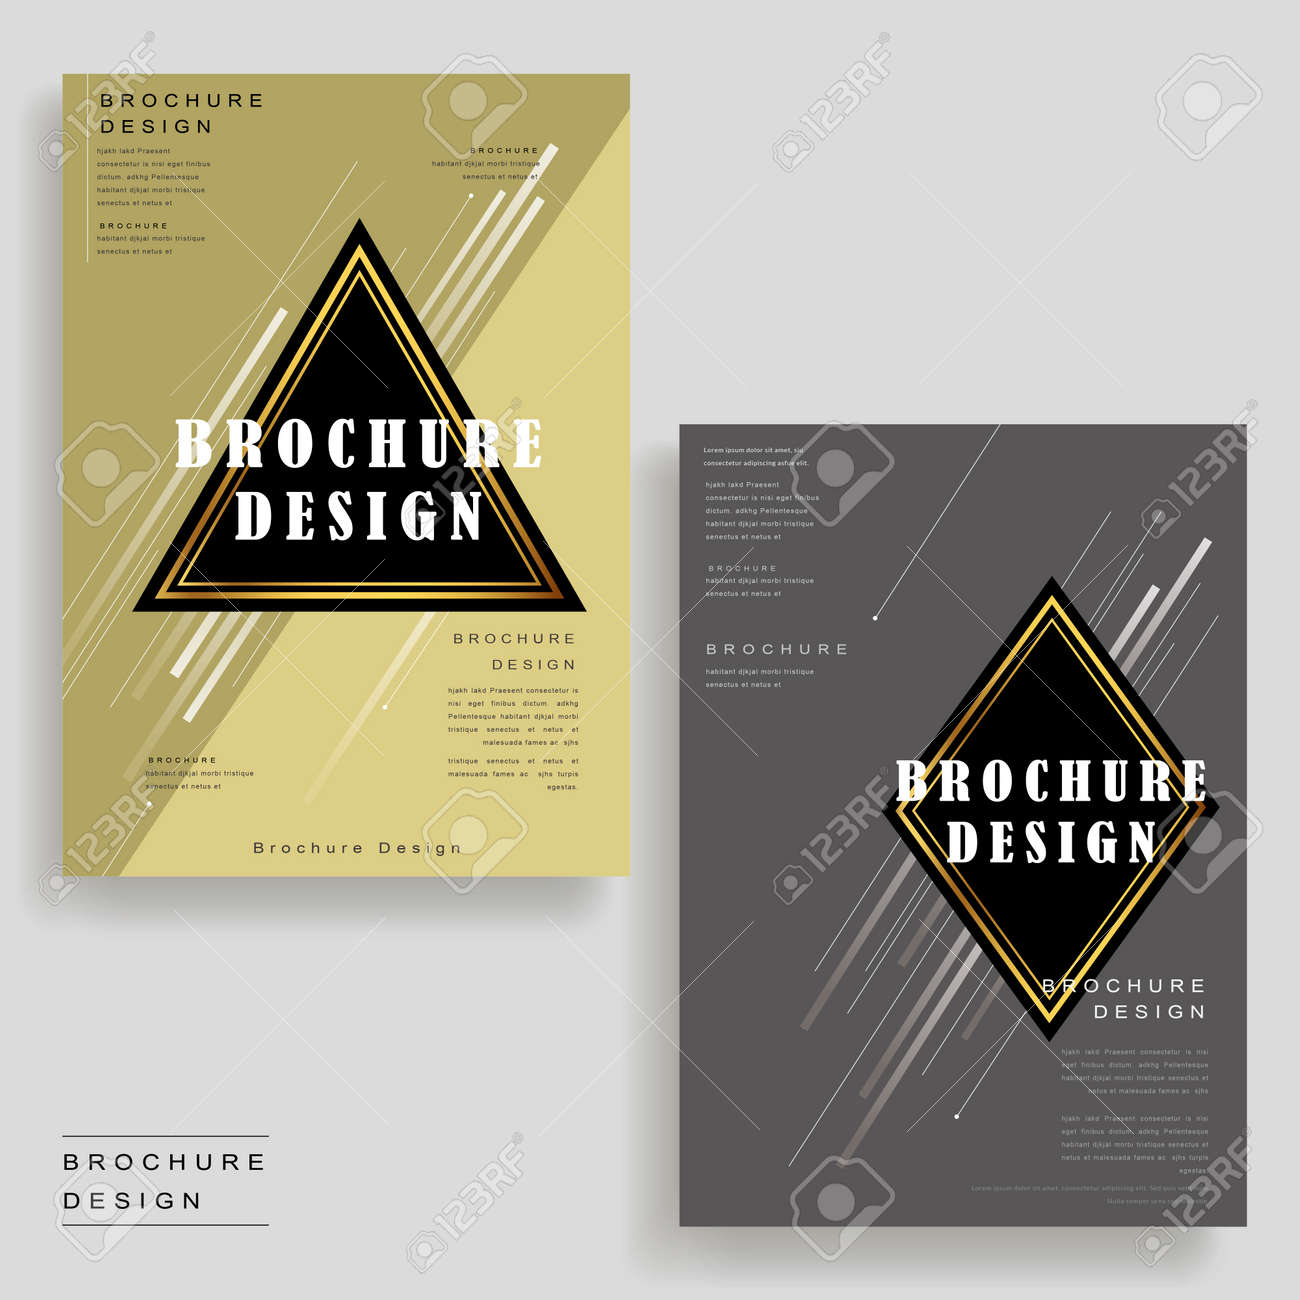 Elegant Brochure Template Design With Triangle And Rhombus Elements